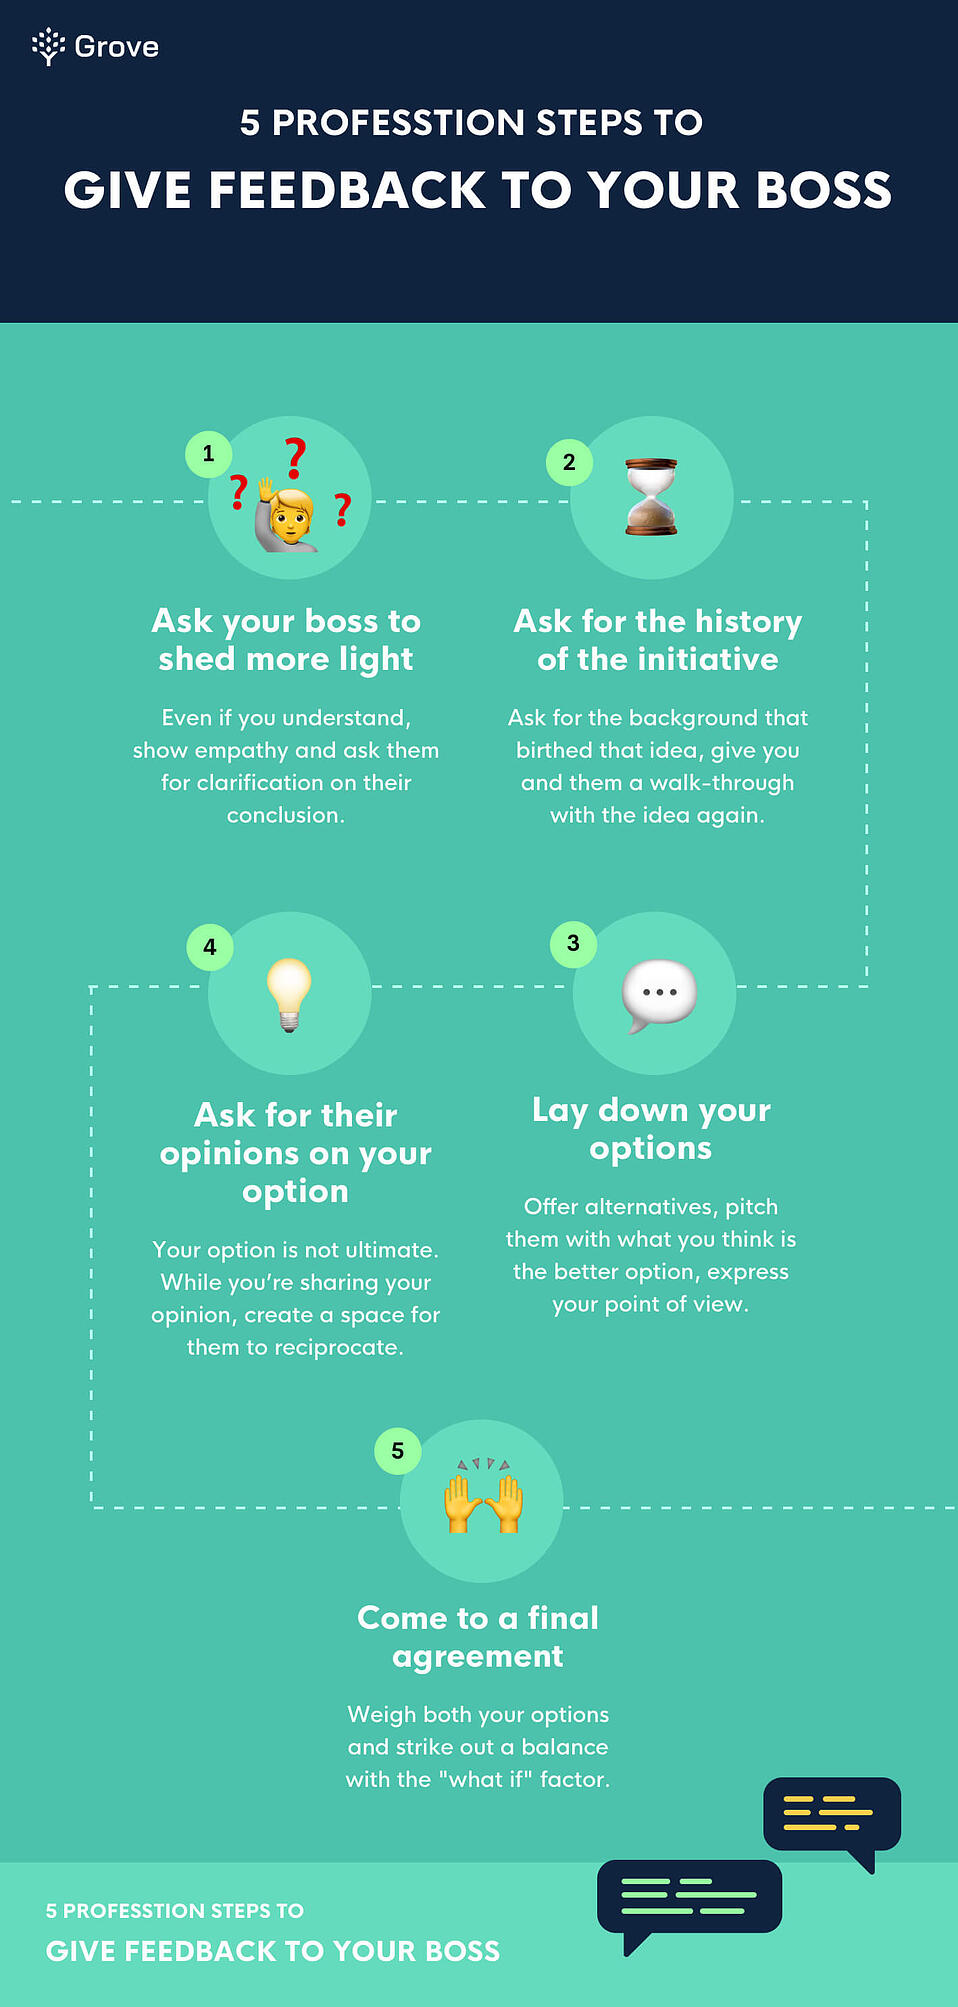 Grove HR - how to give negative feedback to your boss infographic